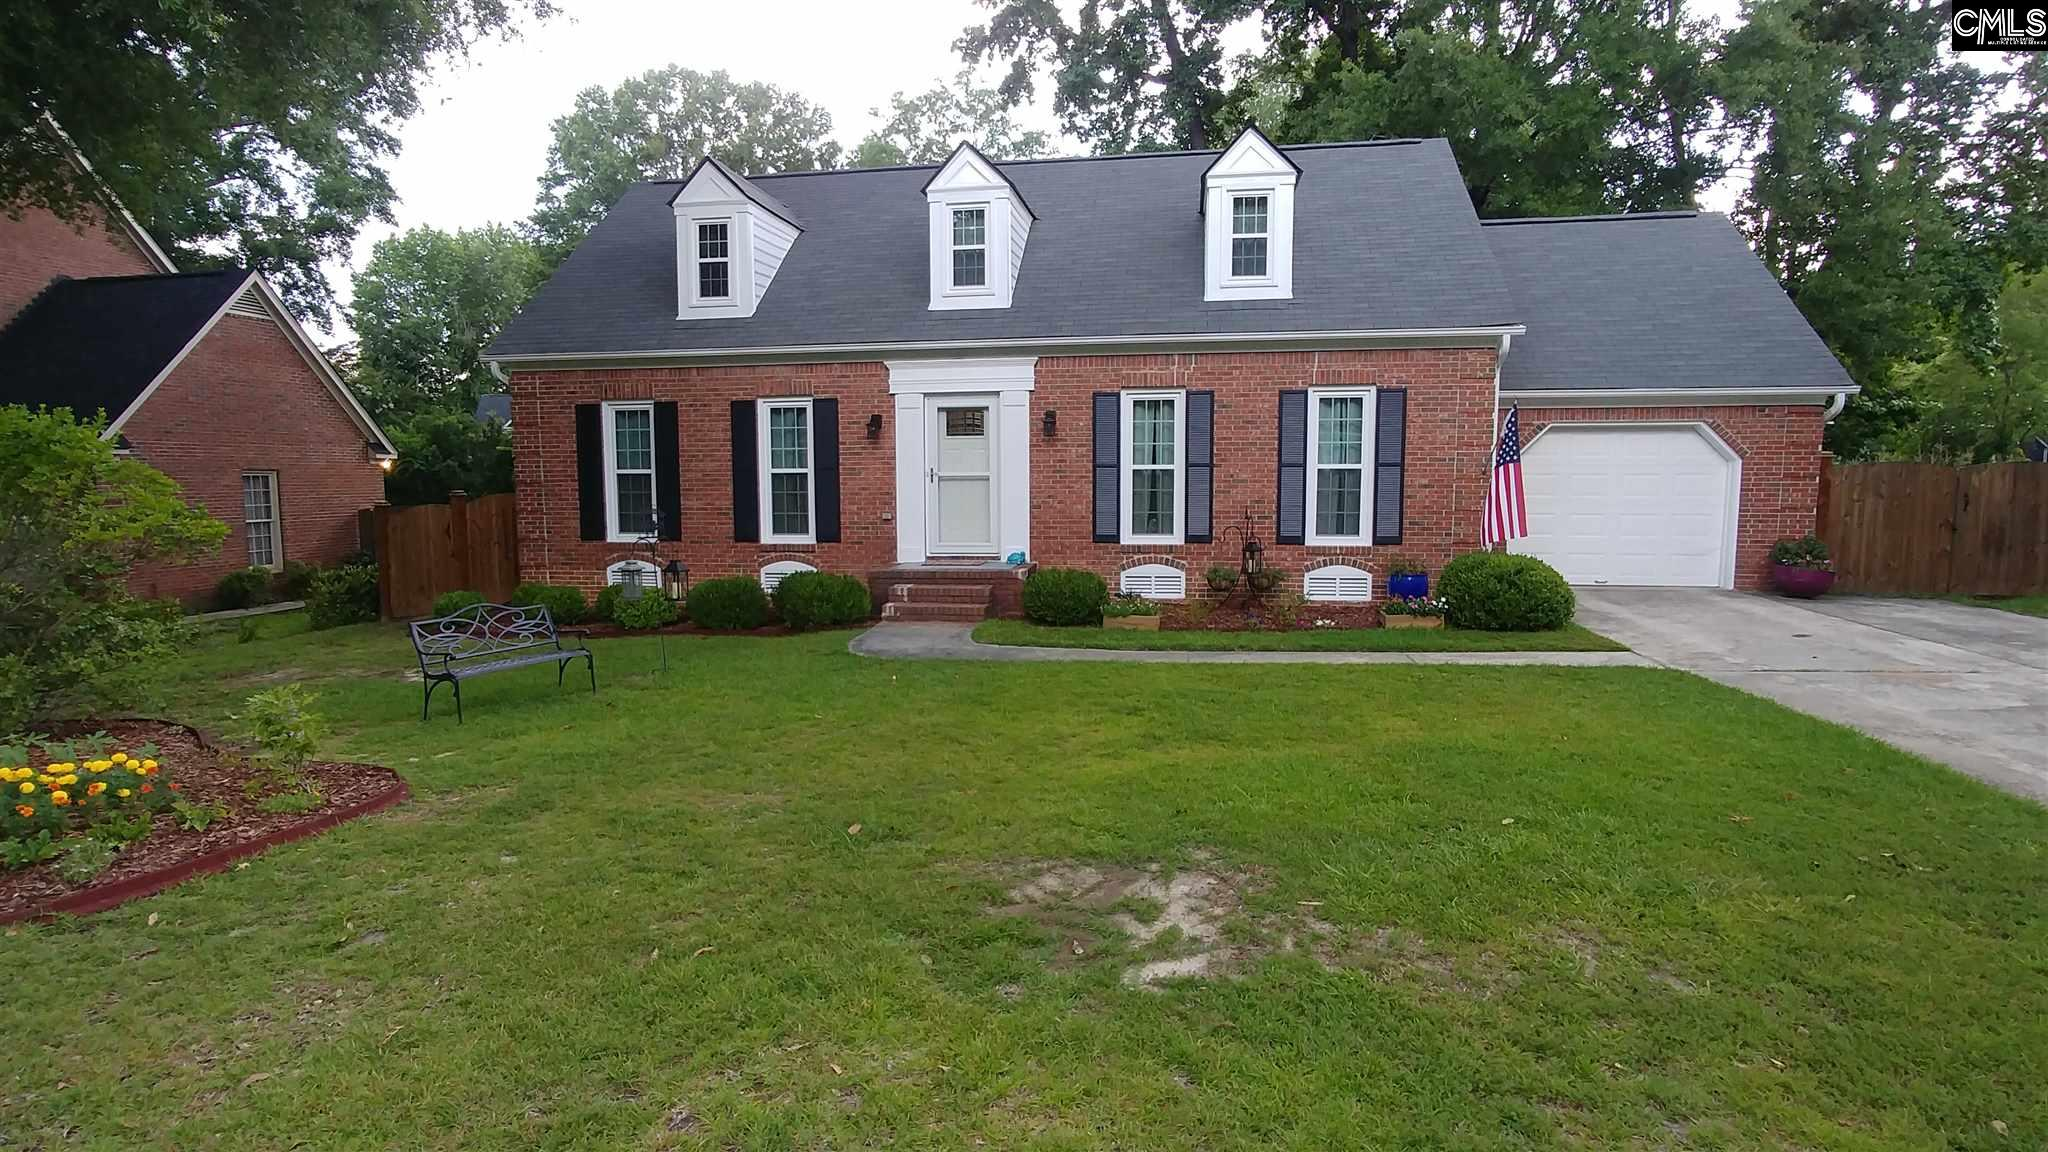 705 Galway Columbia, SC 29209